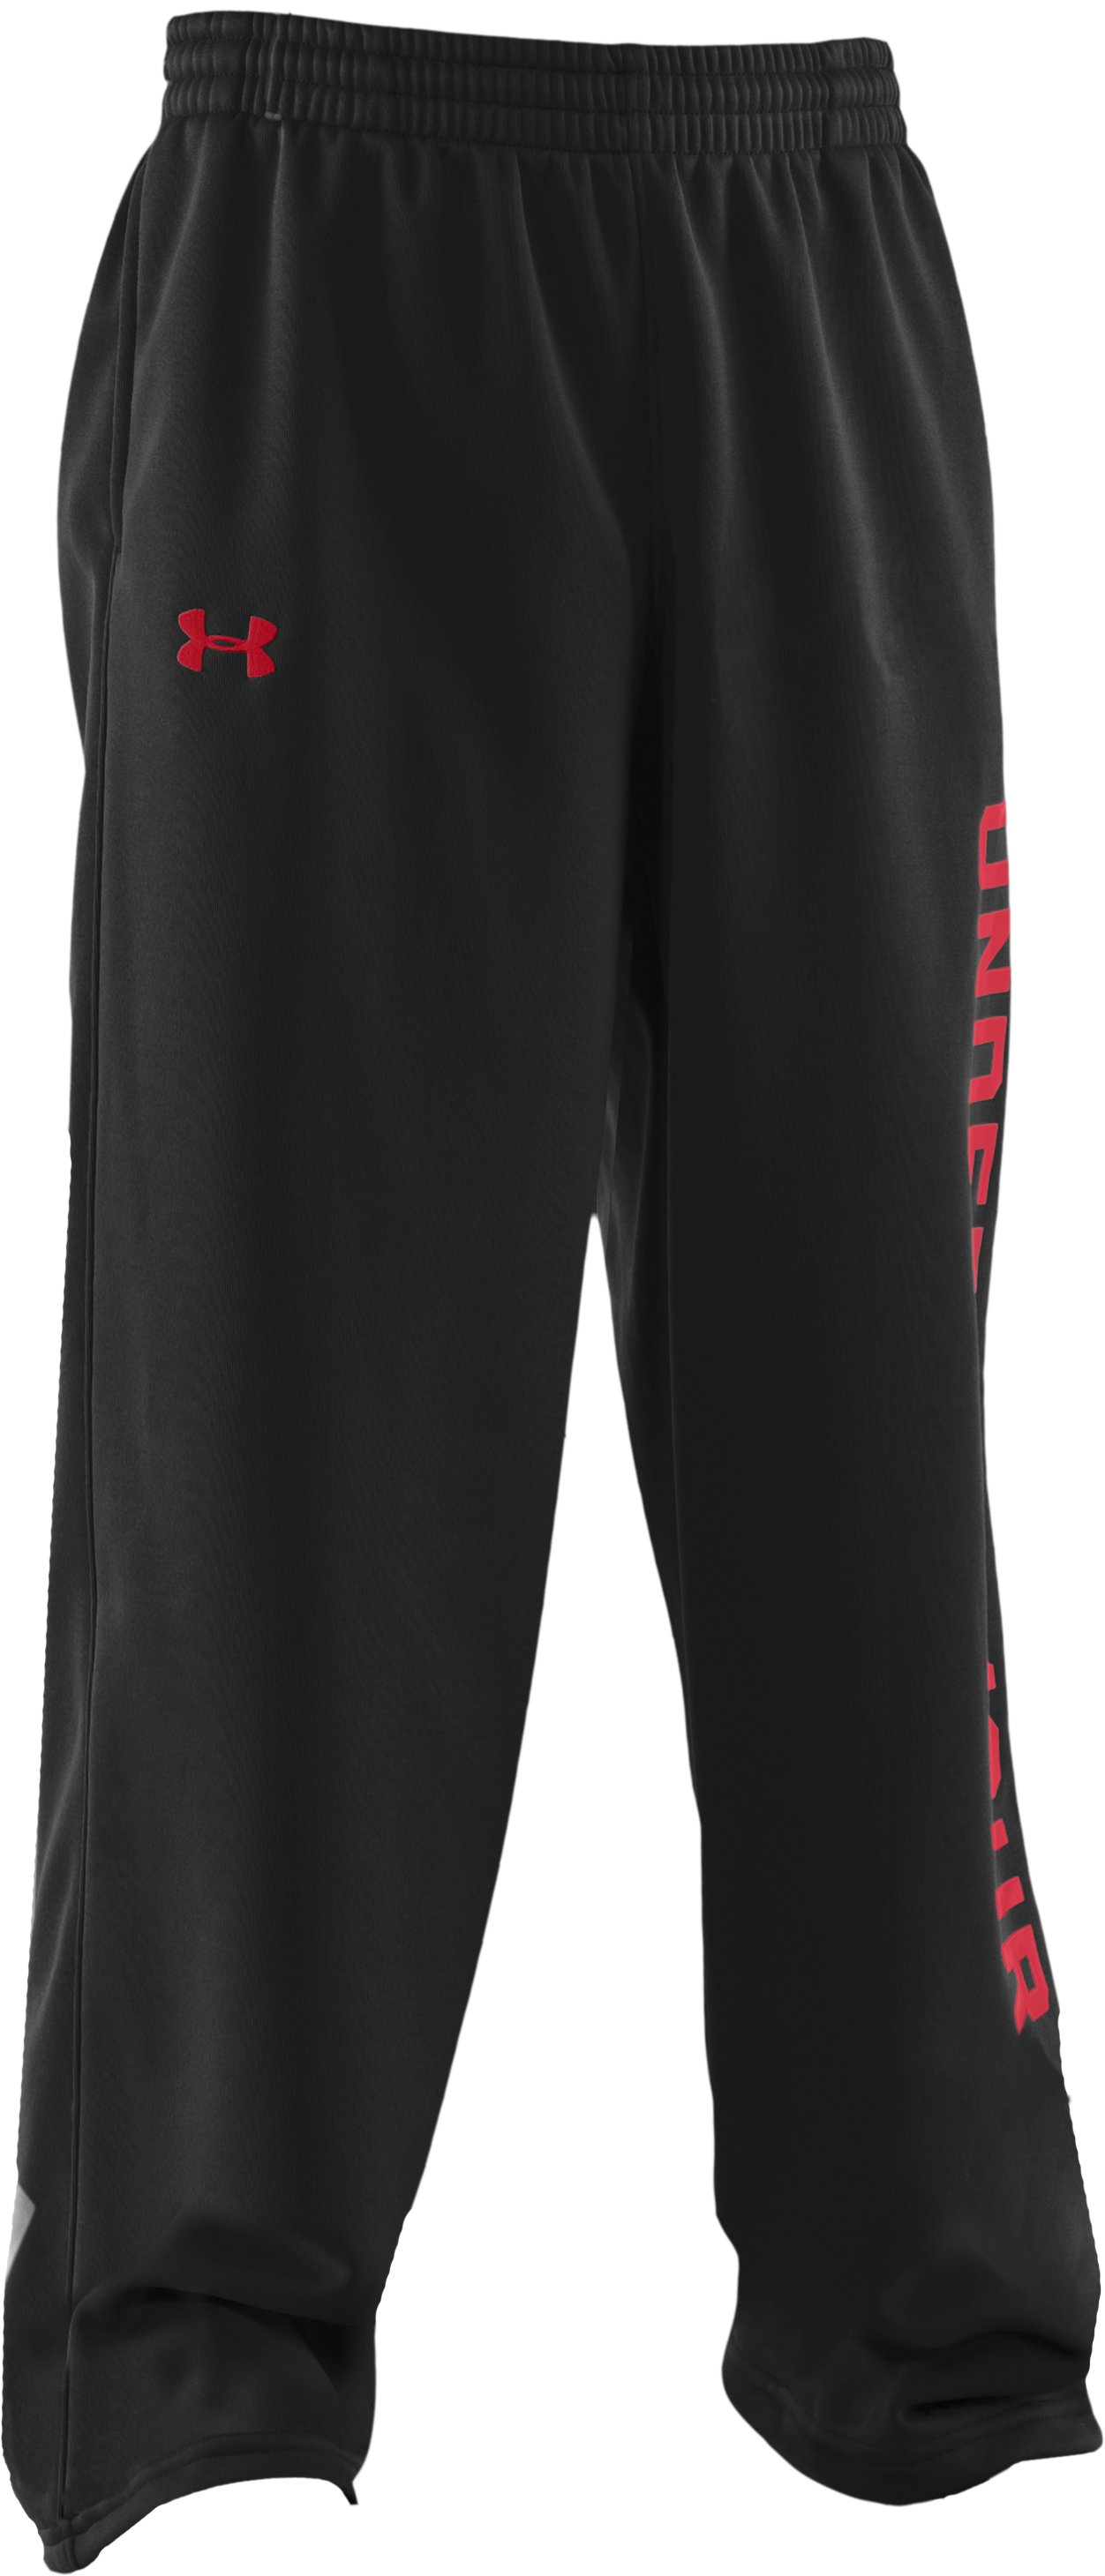 Boys' Armour® Fleece Storm Pants, Black , zoomed image